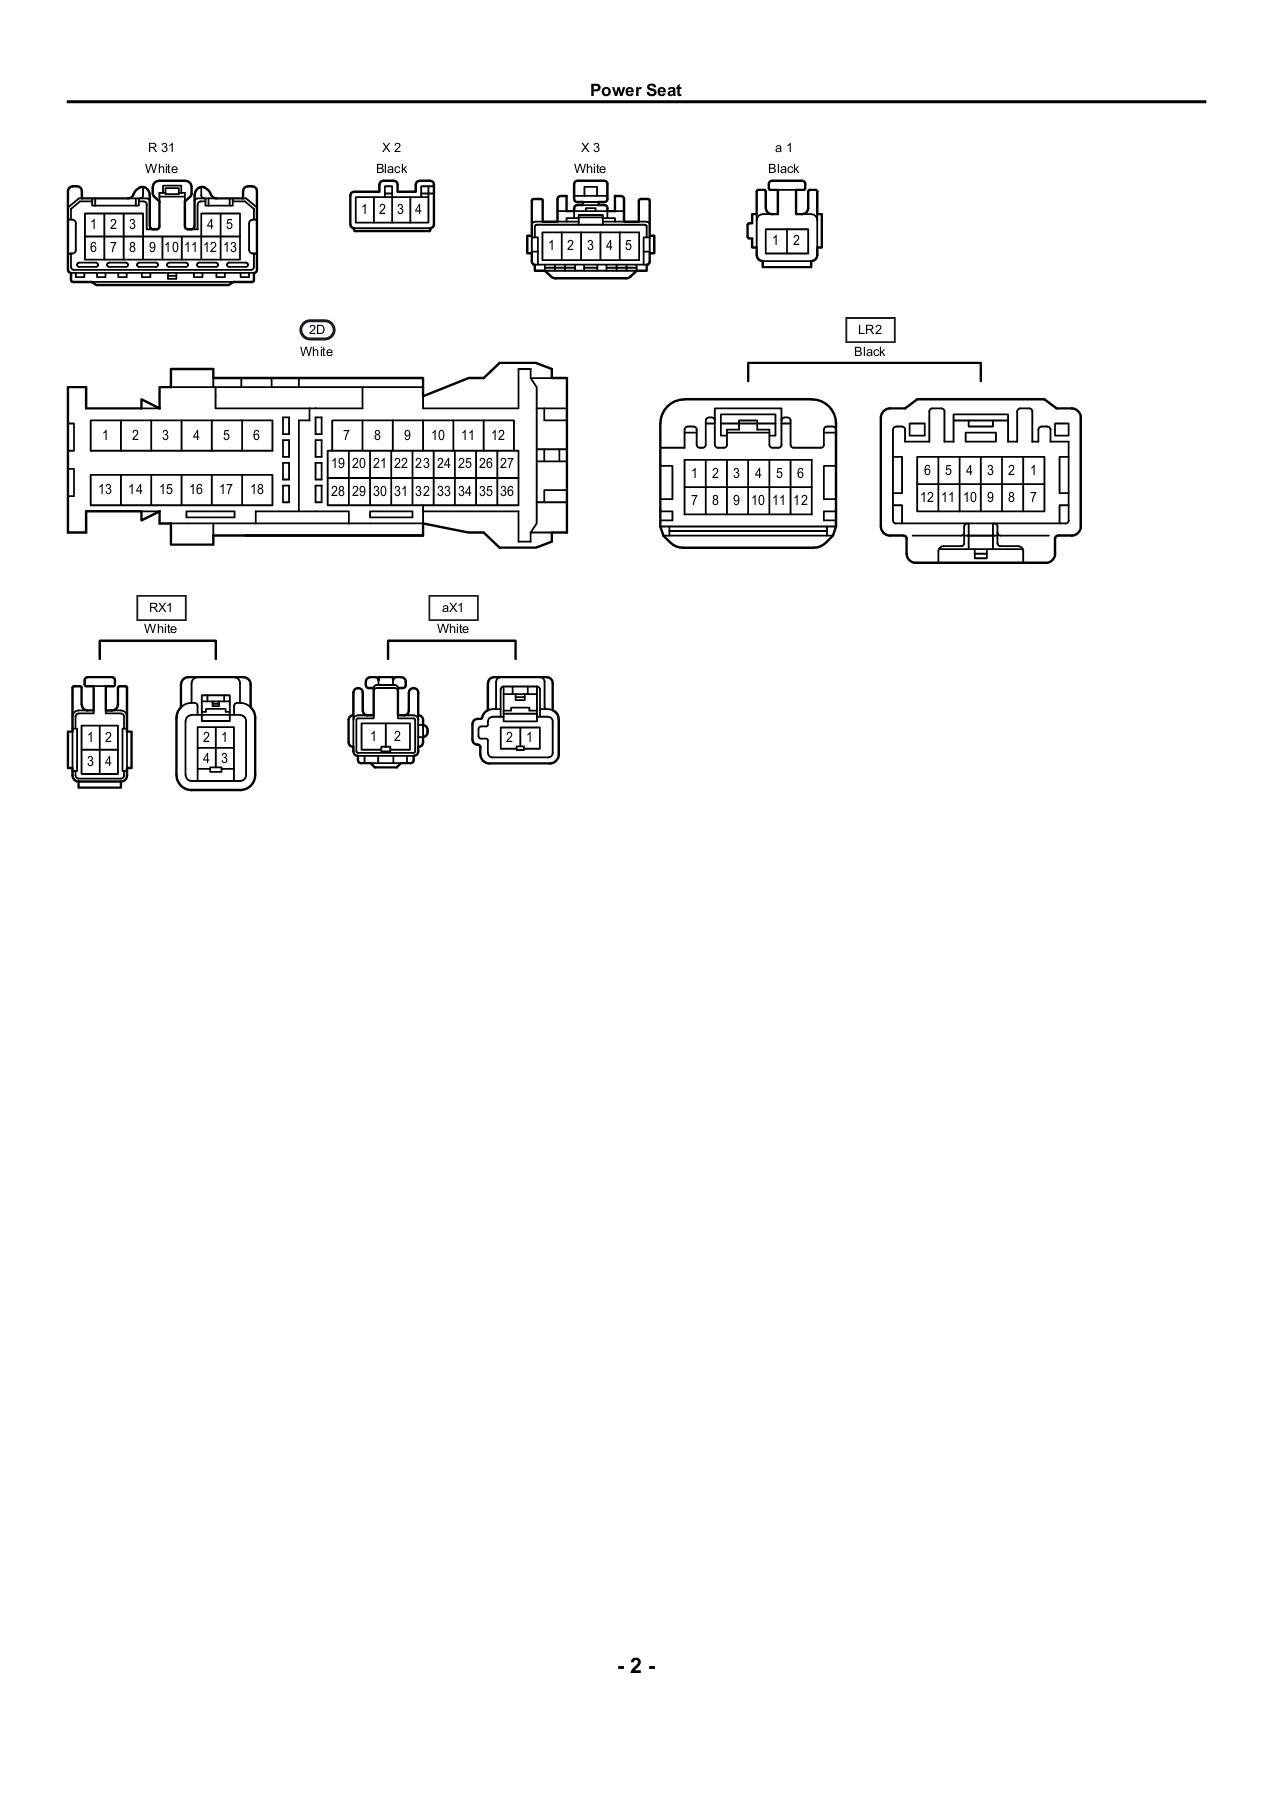 hight resolution of toyota prius 2010 electrical wiring diagrams pages 351 400 text version fliphtml5